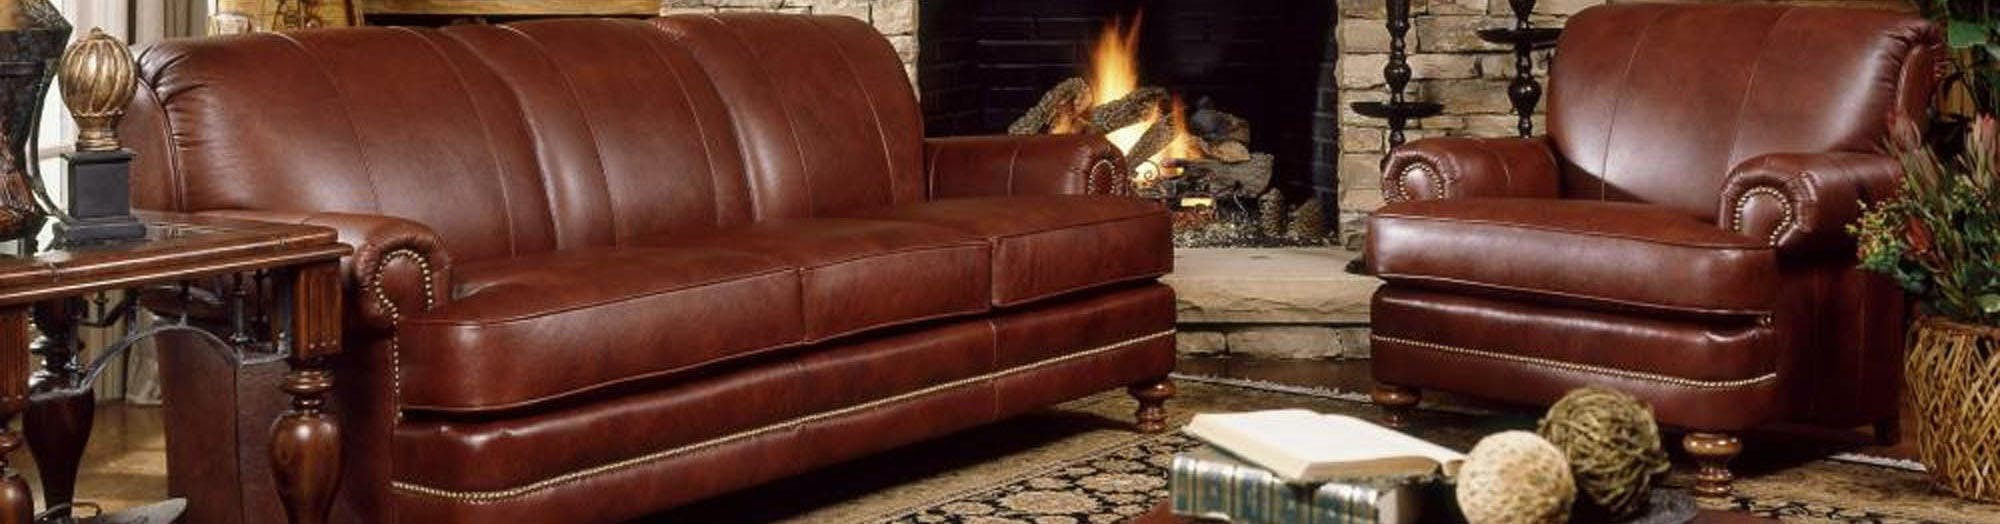 Shop For Sofas In Cincinnati And Dayton OH